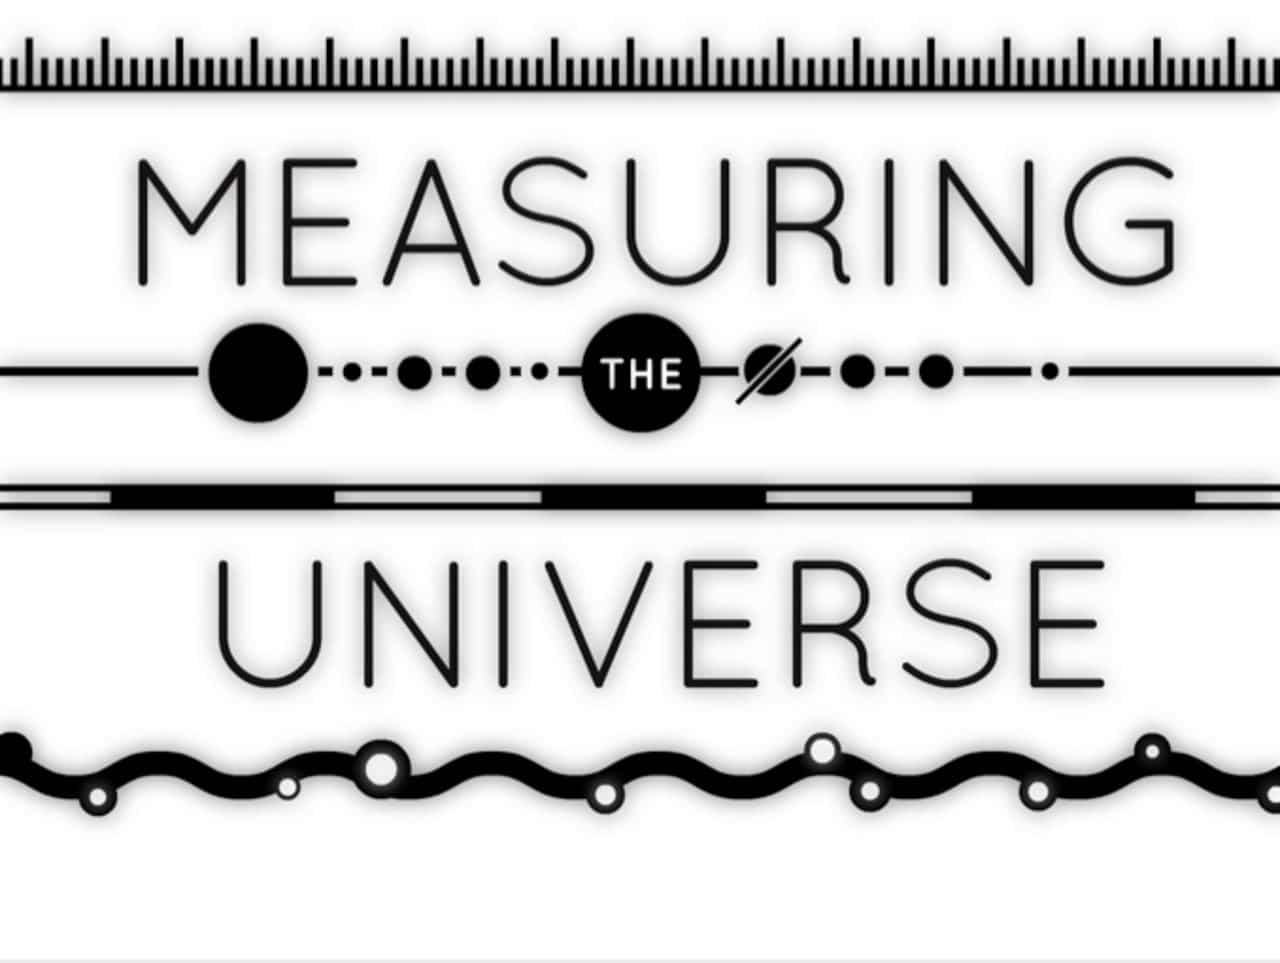 How do we measure the universe?